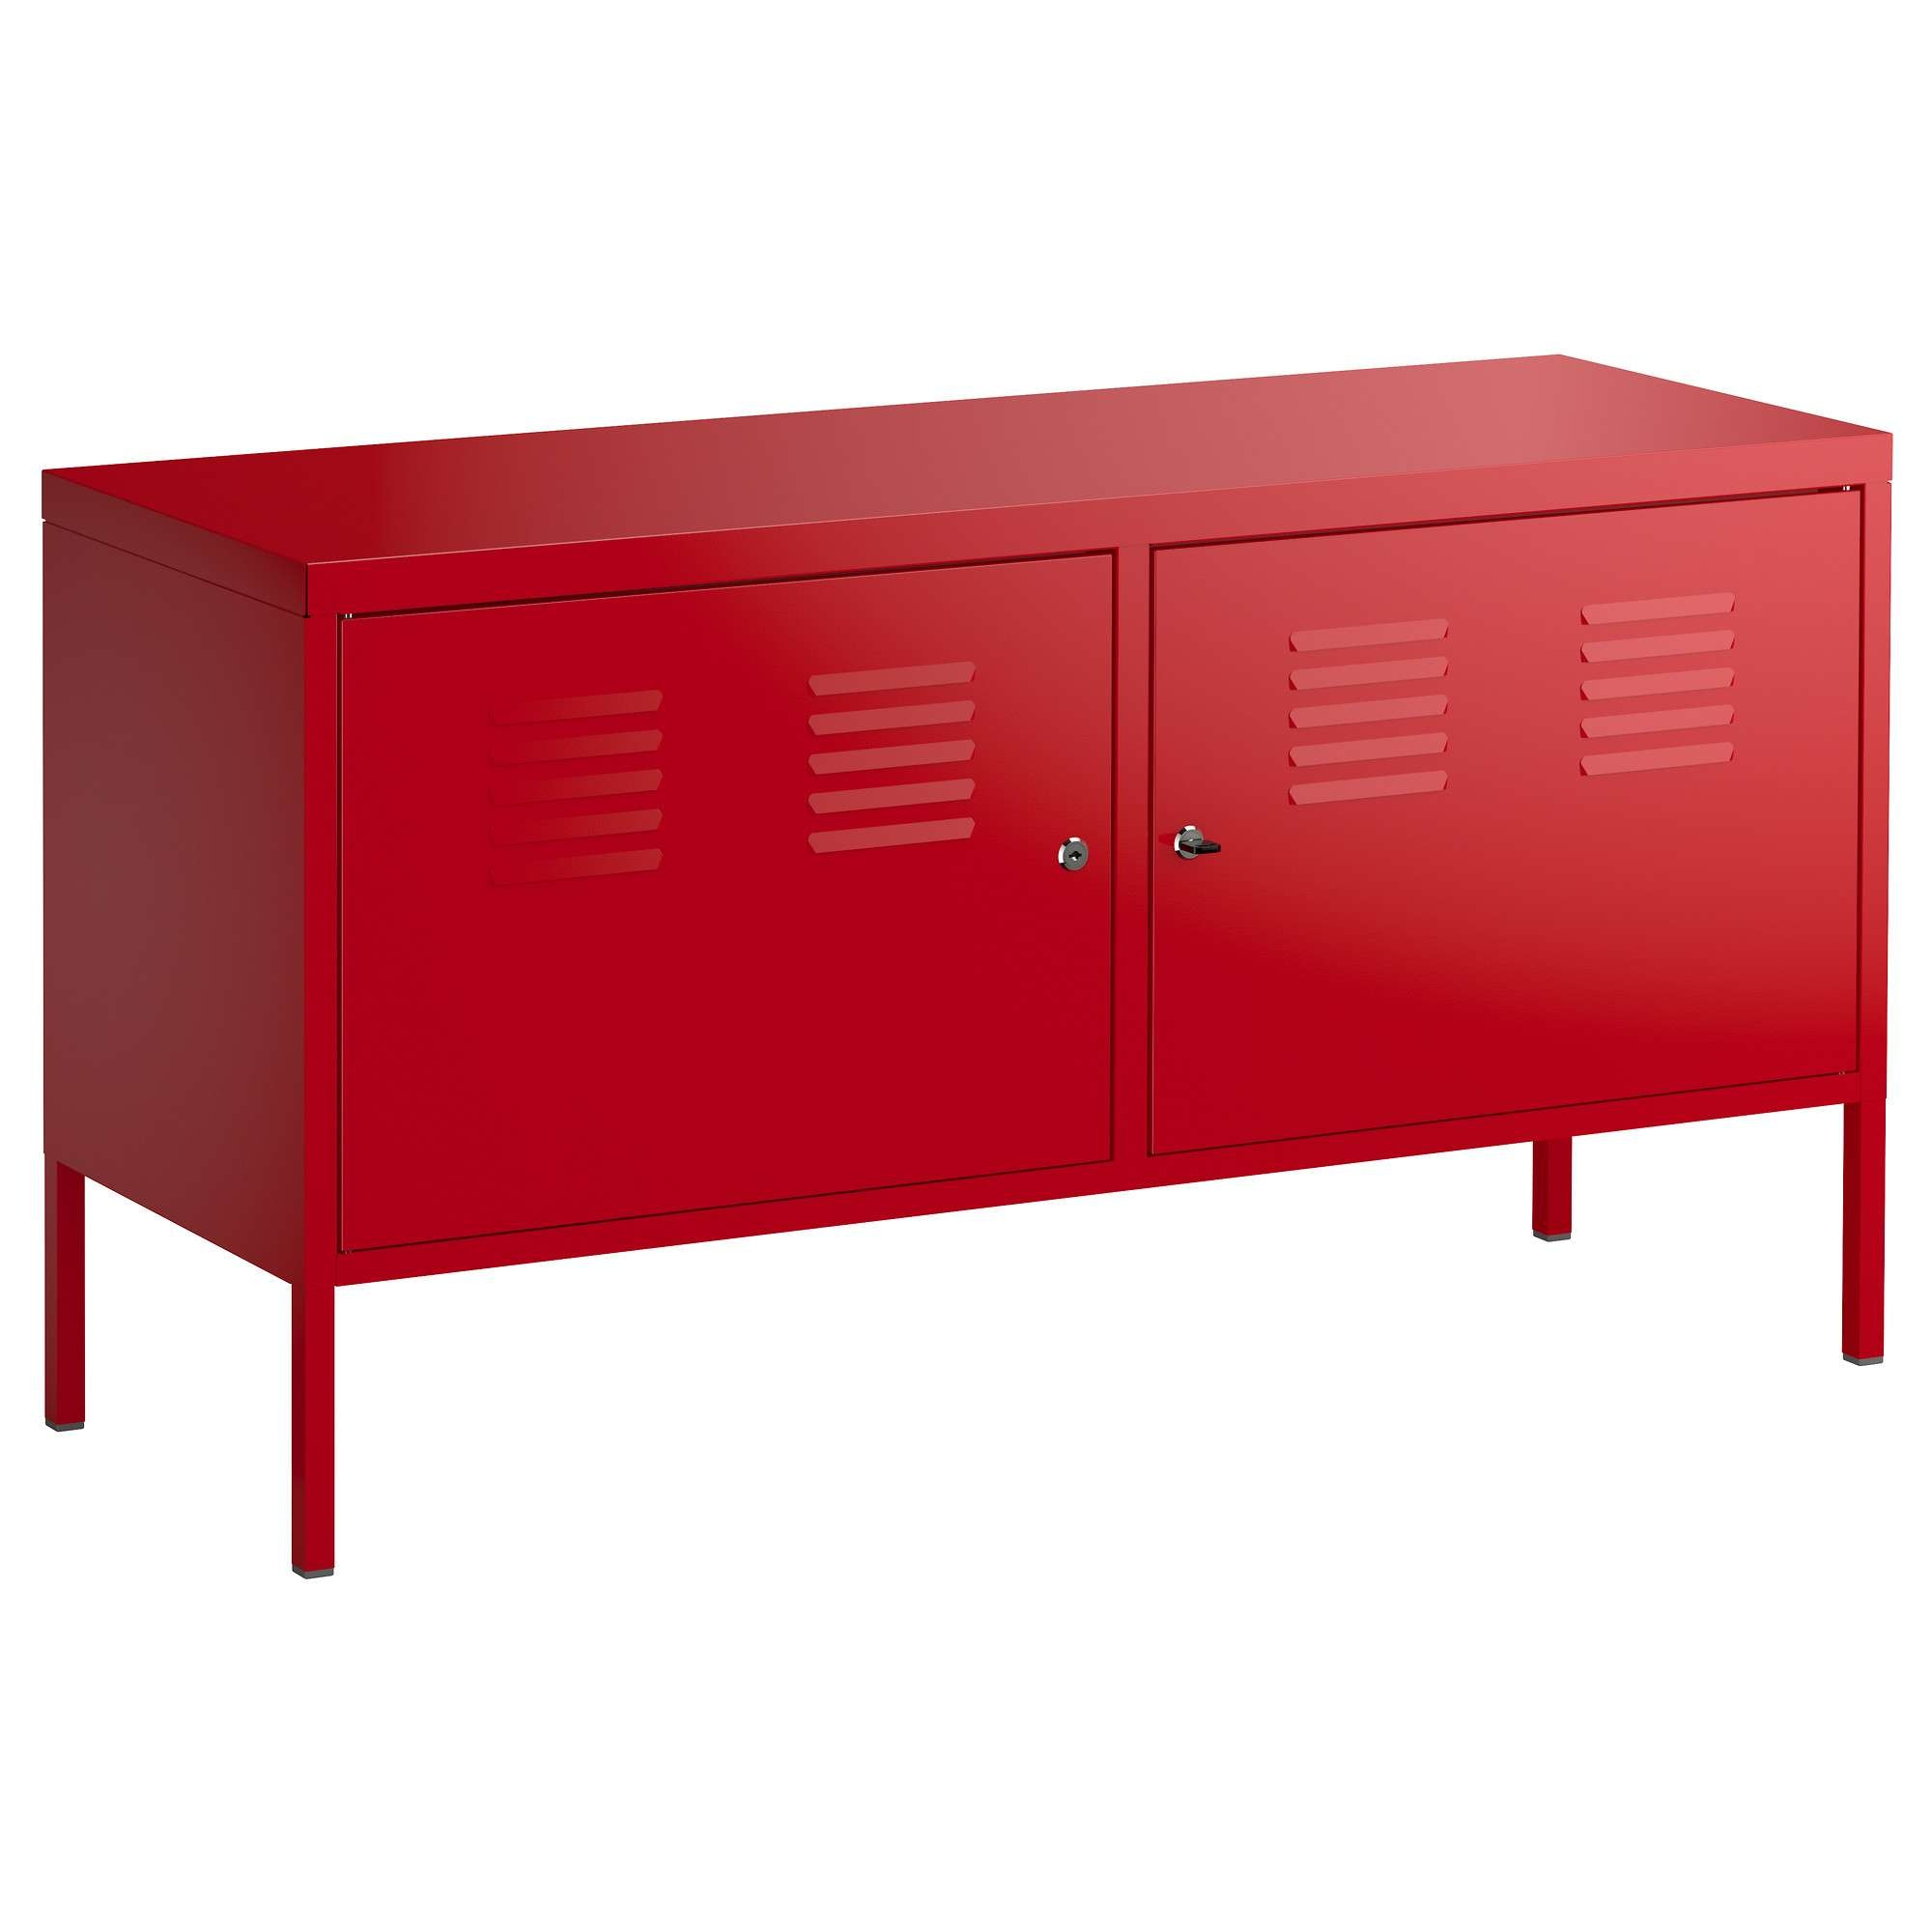 Ikea Ps Cabinet – Red – Ikea Throughout Red Tv Cabinets (View 3 of 20)